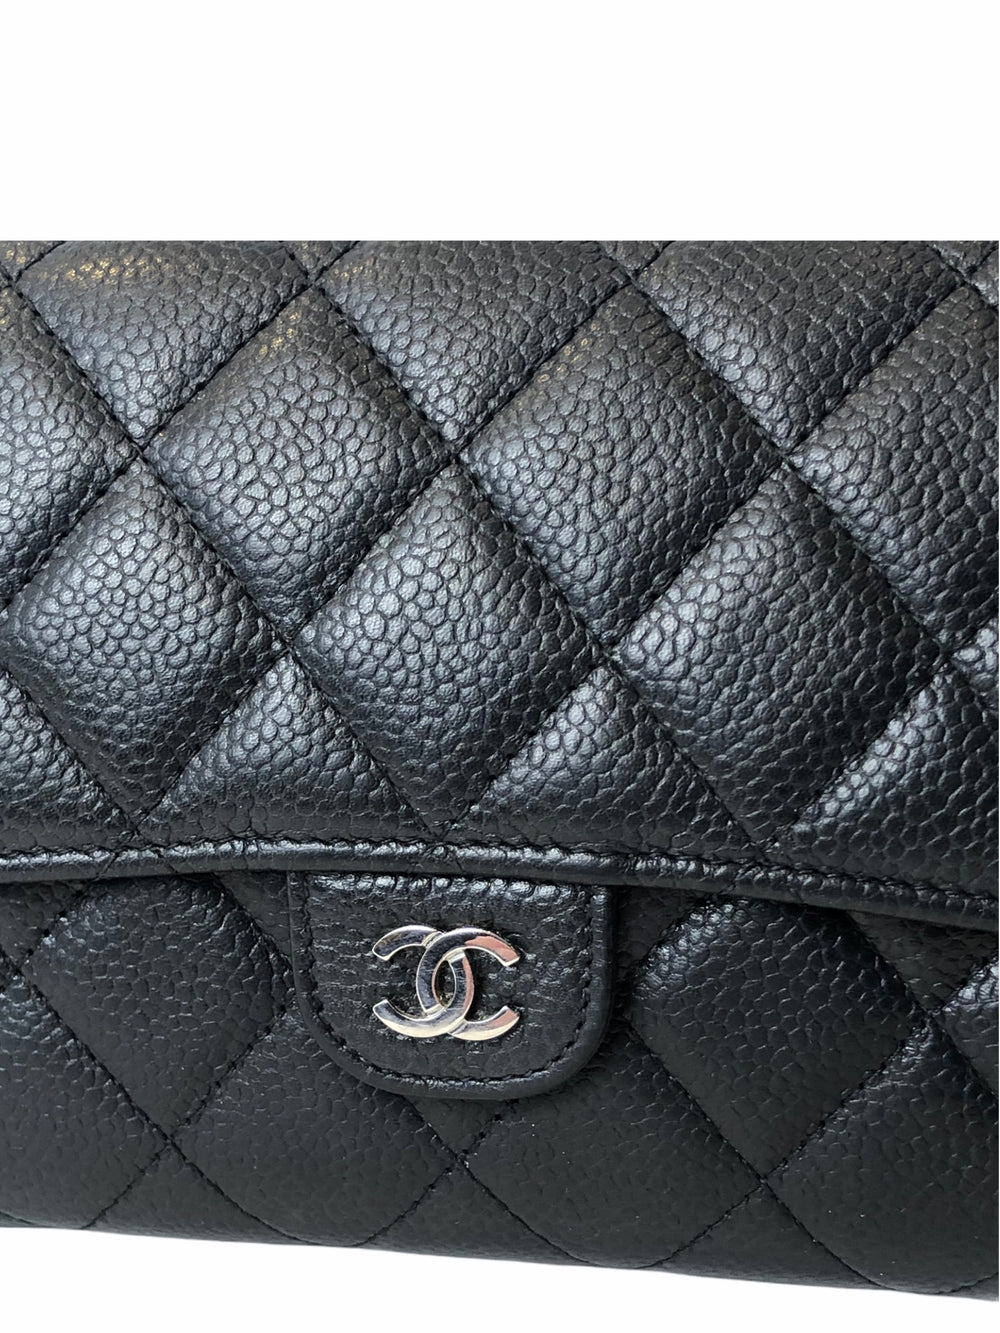 Chanel Black Caviar Leather Multi Wallet